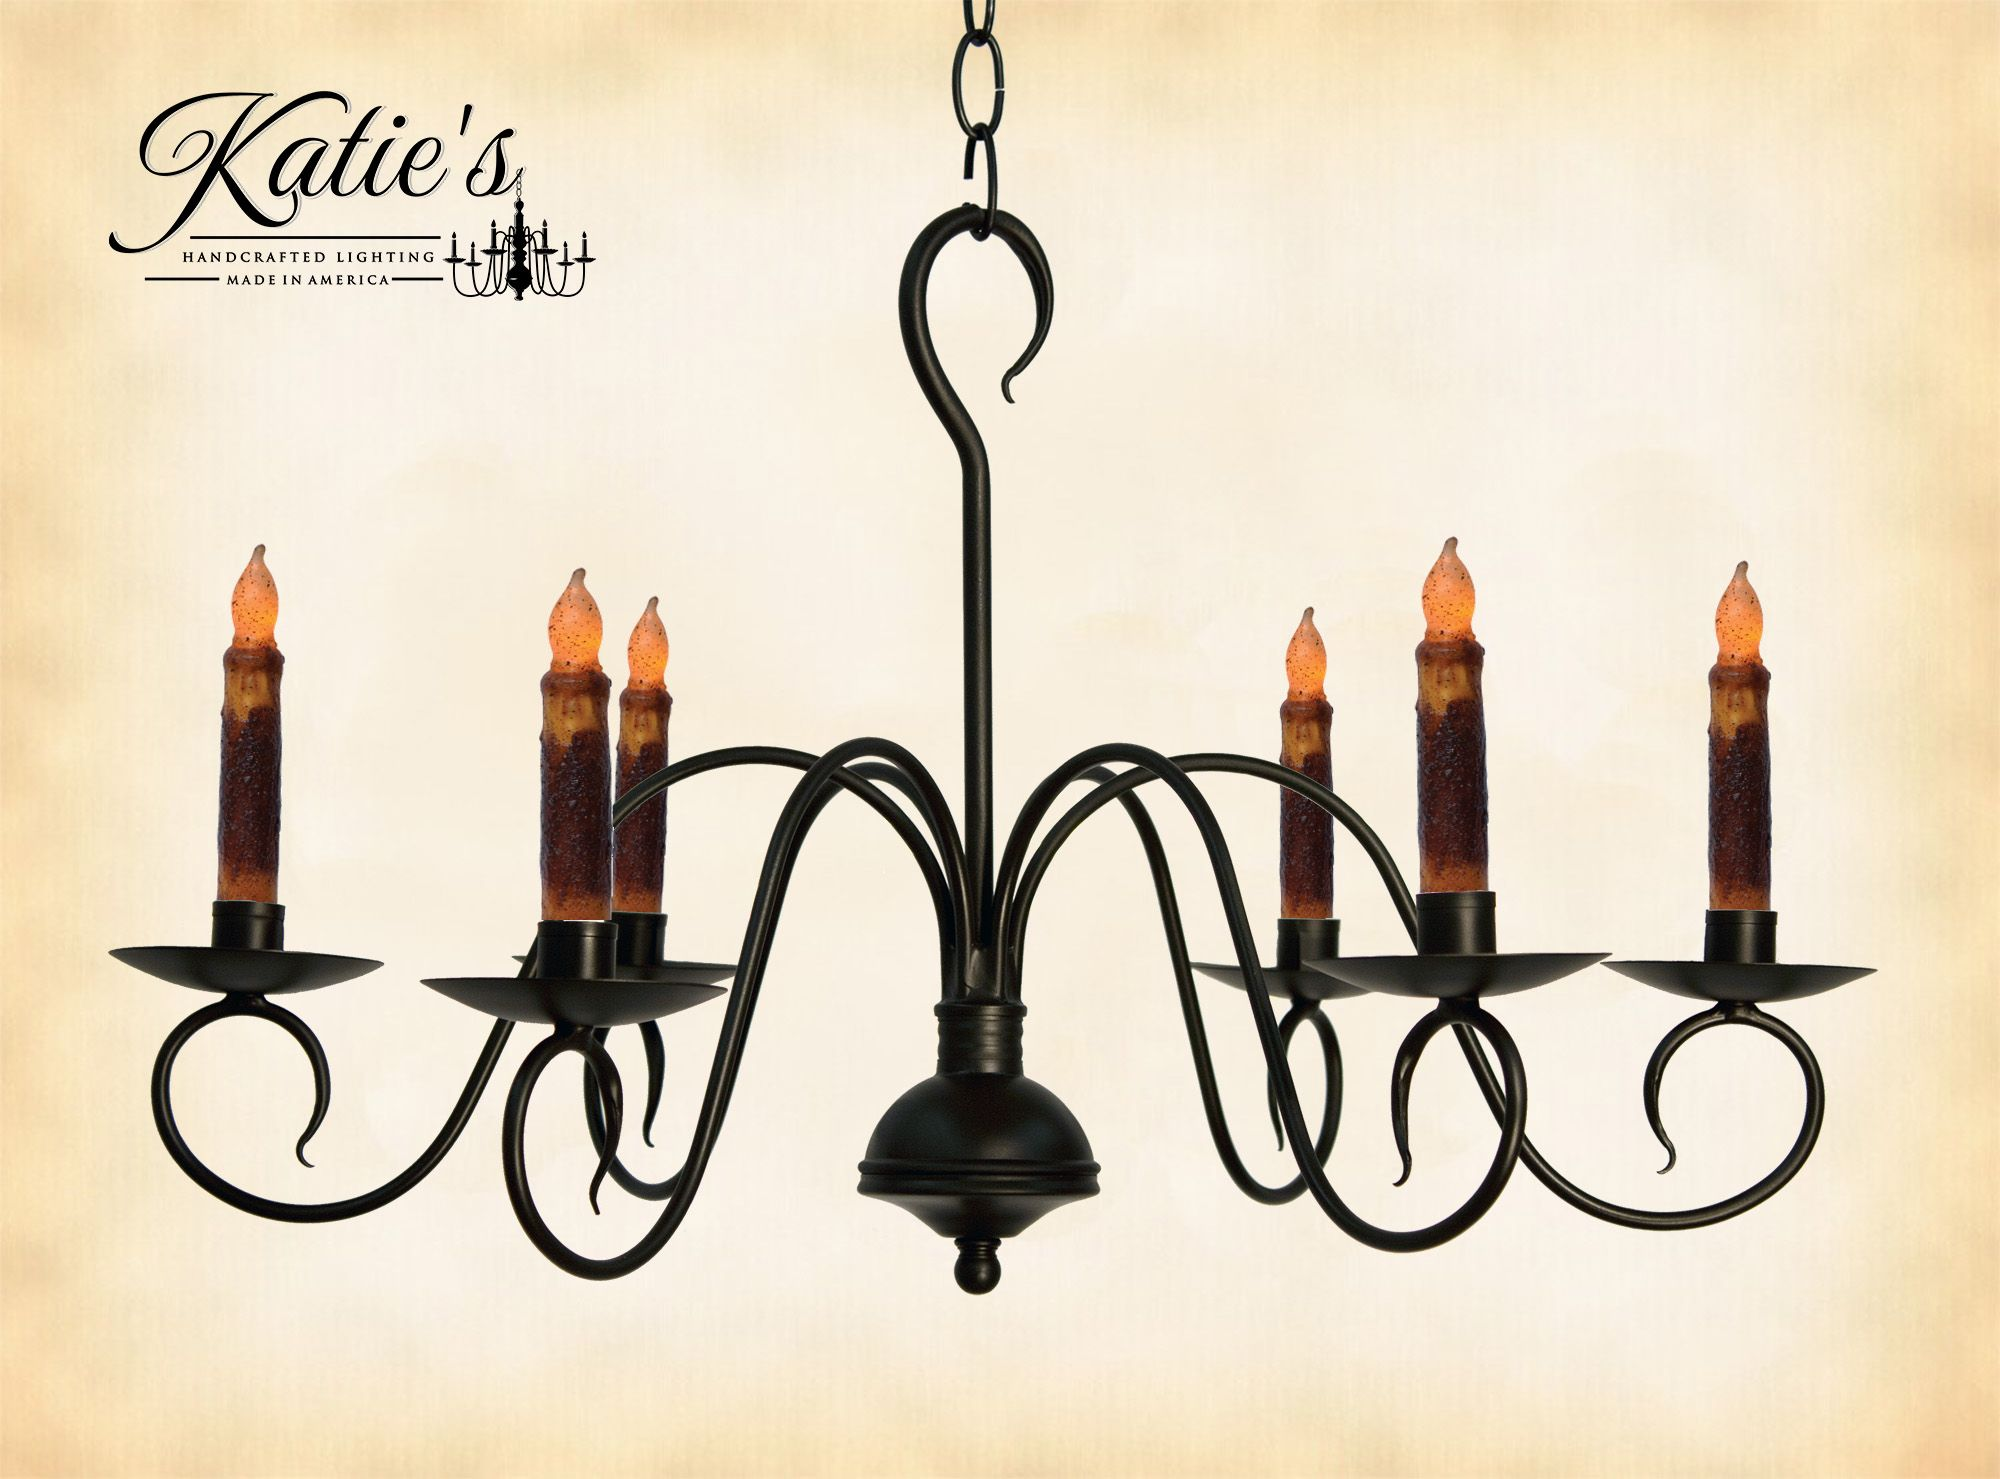 Franklin Wrought Iron Candle Chandelier by Katies Handcrafted